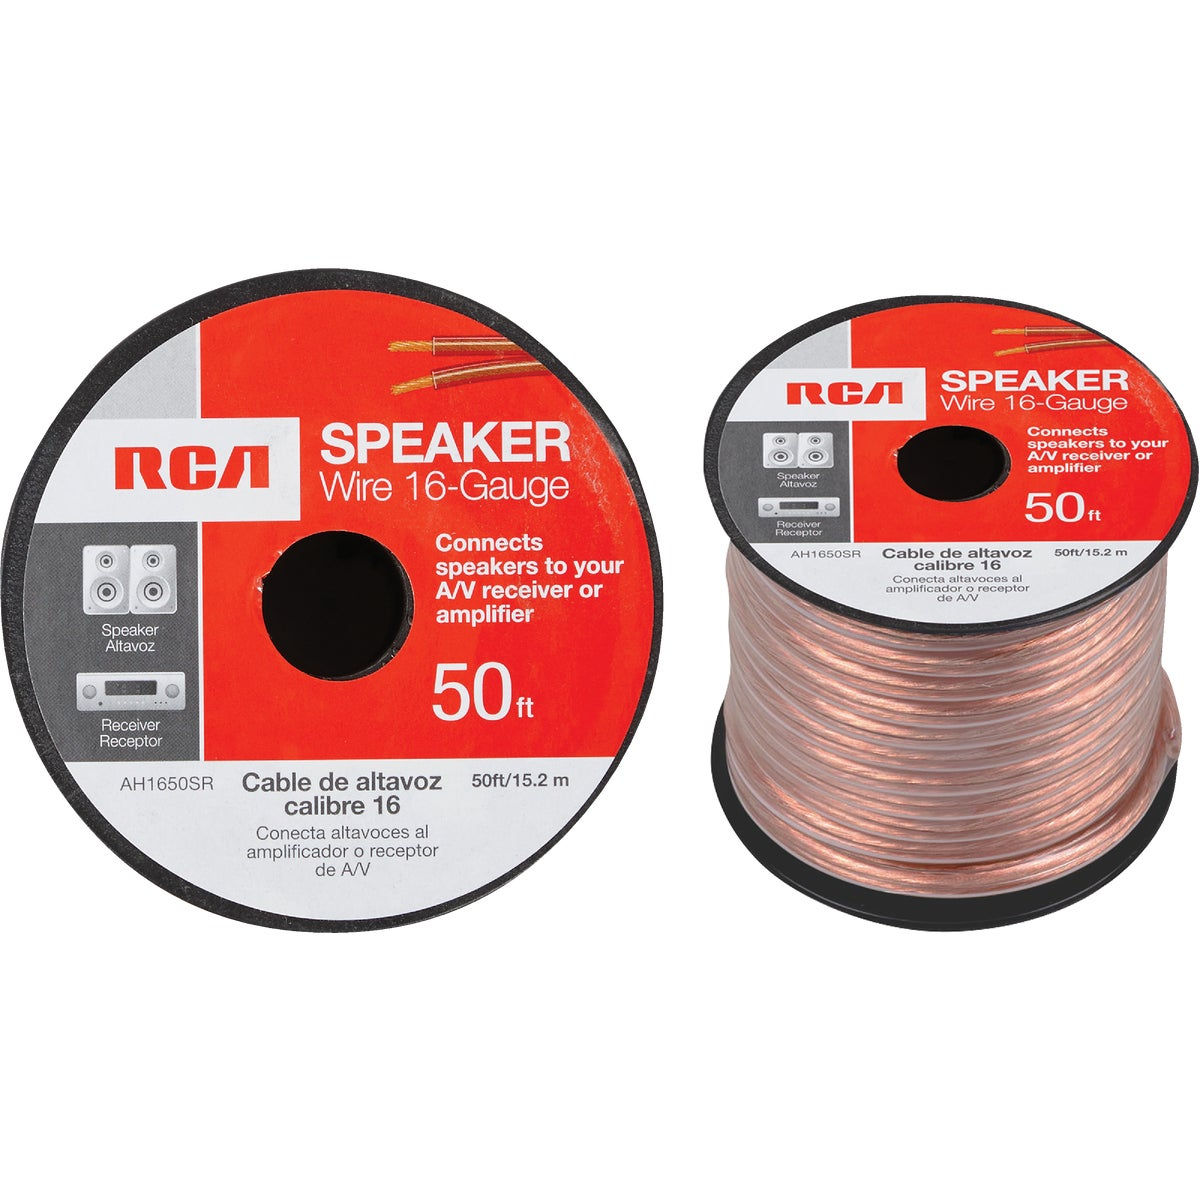 50' 16/2 SPEAKER WIRE - AH1650SR by Audiovox Accessories